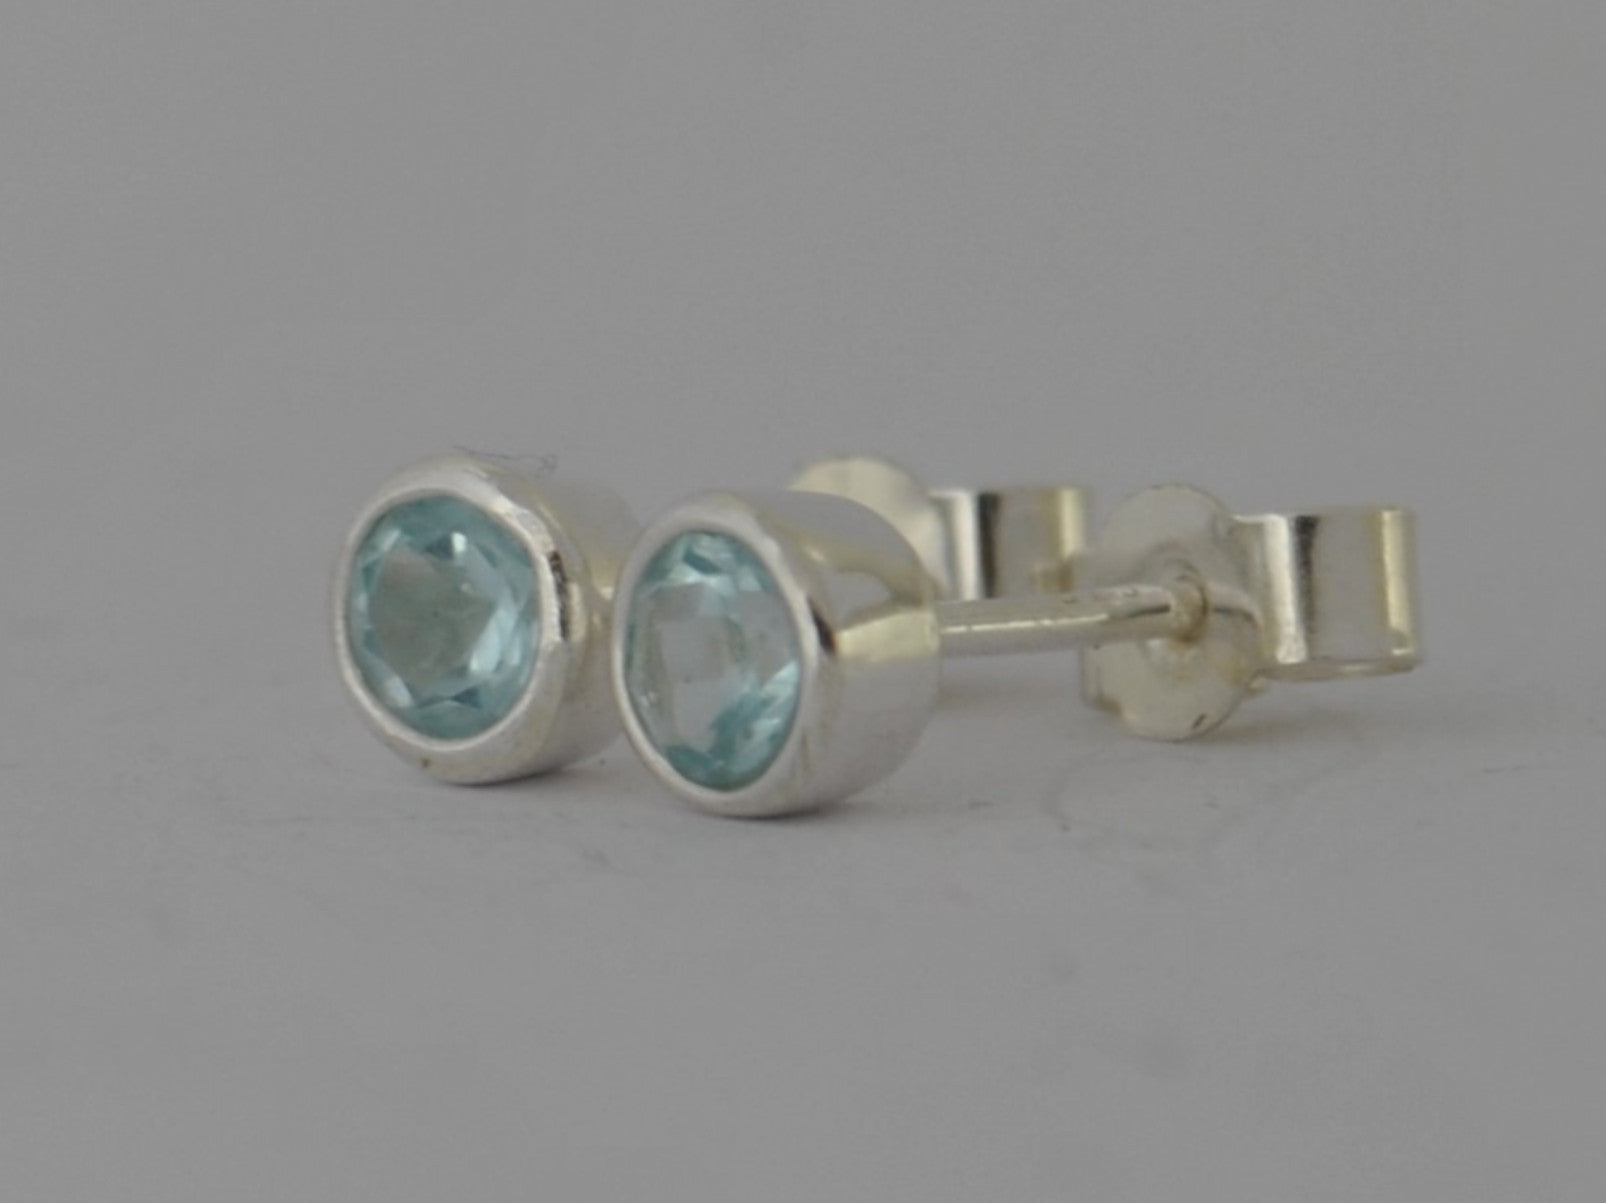 jewellery sloane mcdonough product topaz stud kiki grace blue bt studs white earrings